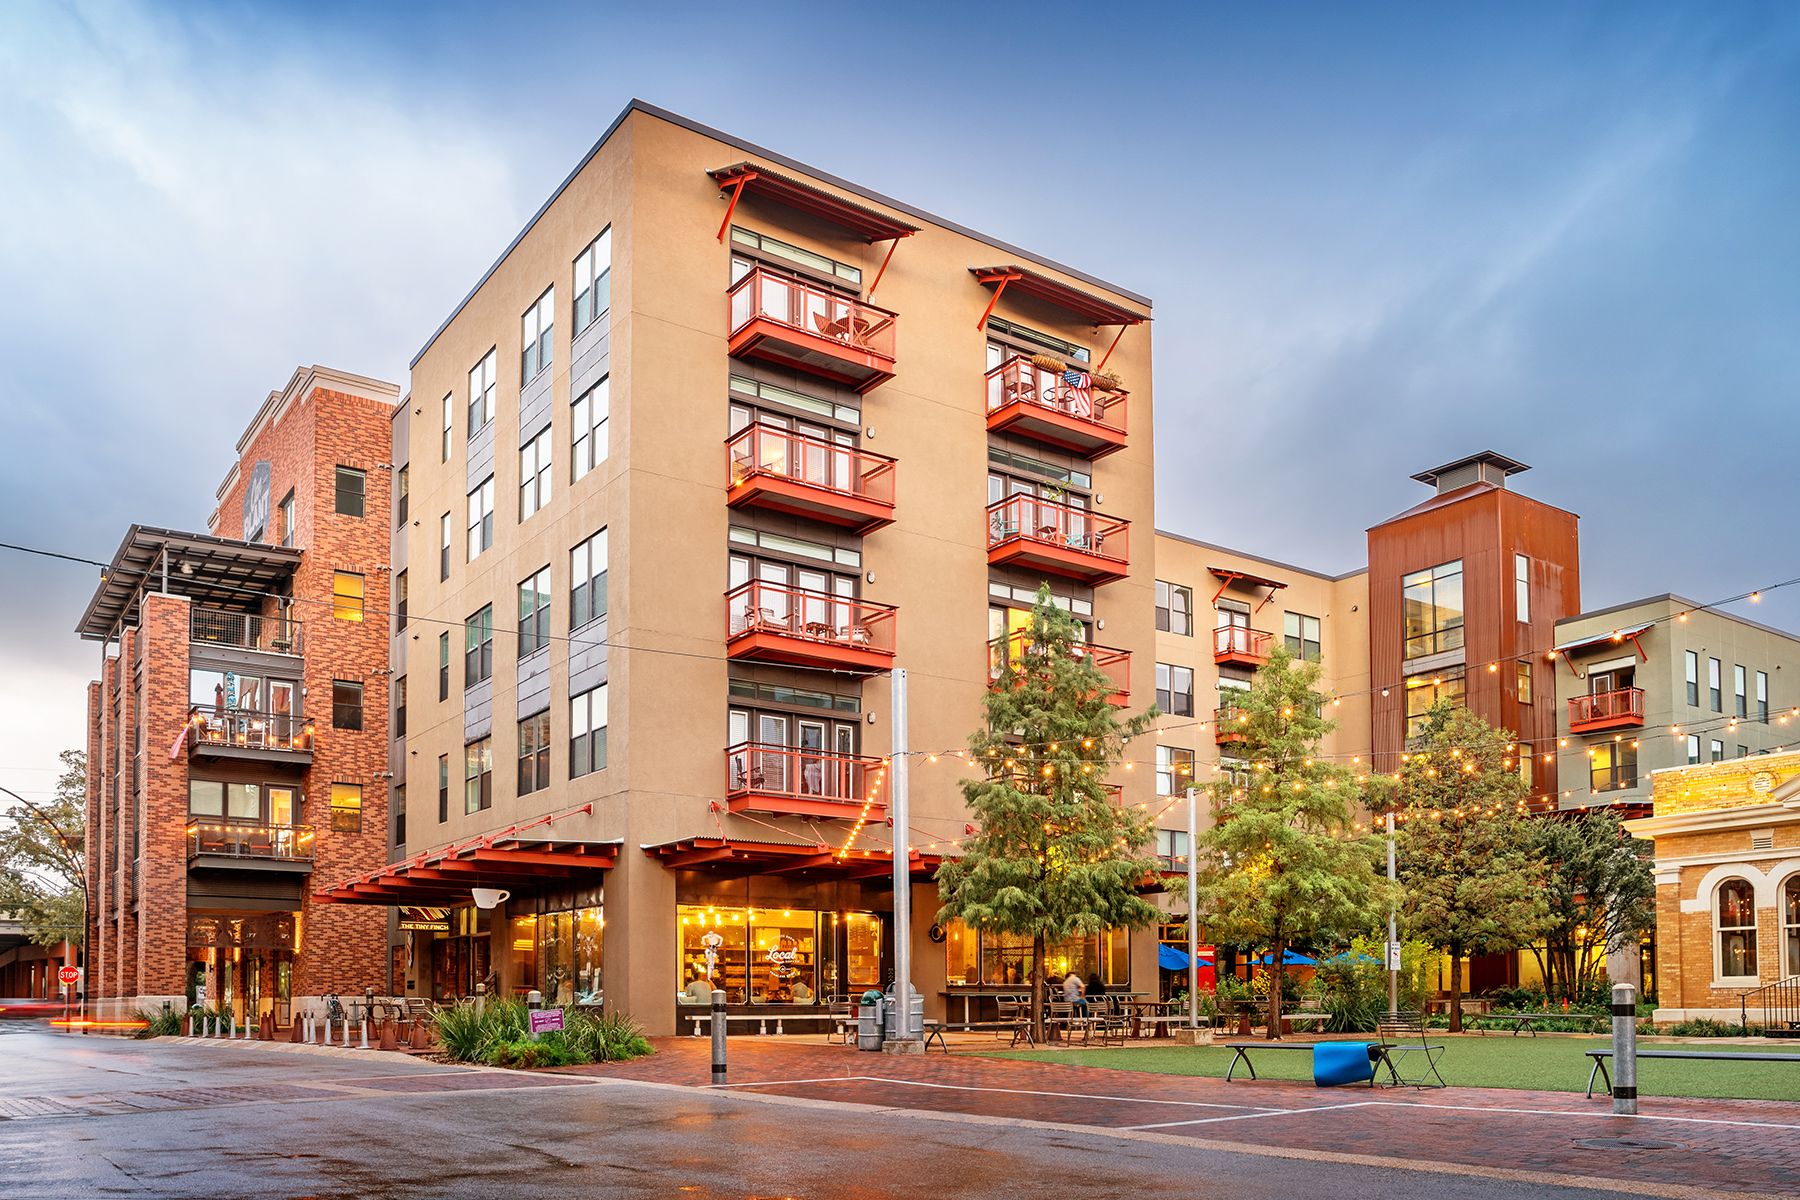 Commercial real estate deal volume is getting fueled by lending for the construction of apartments across the country. Pictured are new condos in the Pearl District of San Antonio, Texas. (iStock)